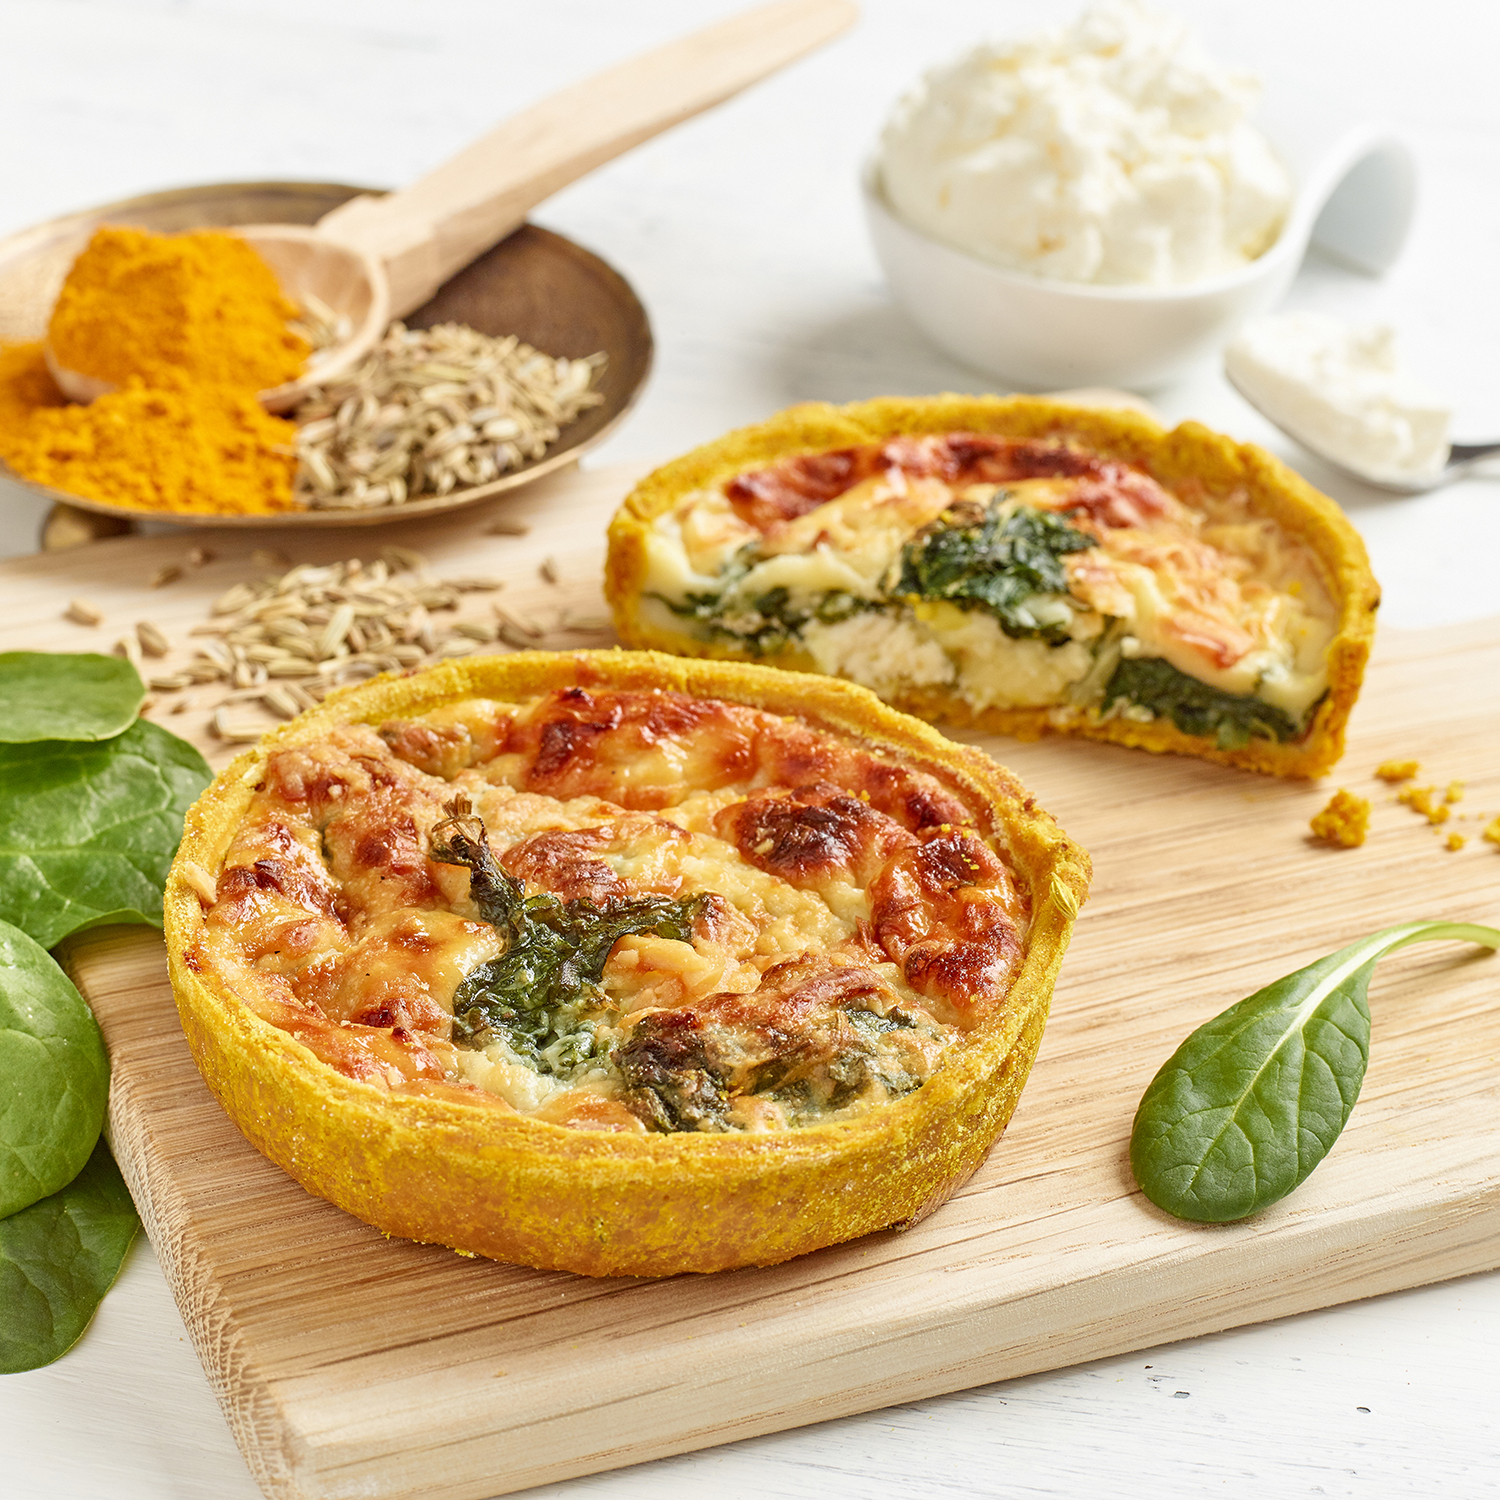 Spinach & Ricotta Quiche in a Turmeric & Fennel Crust